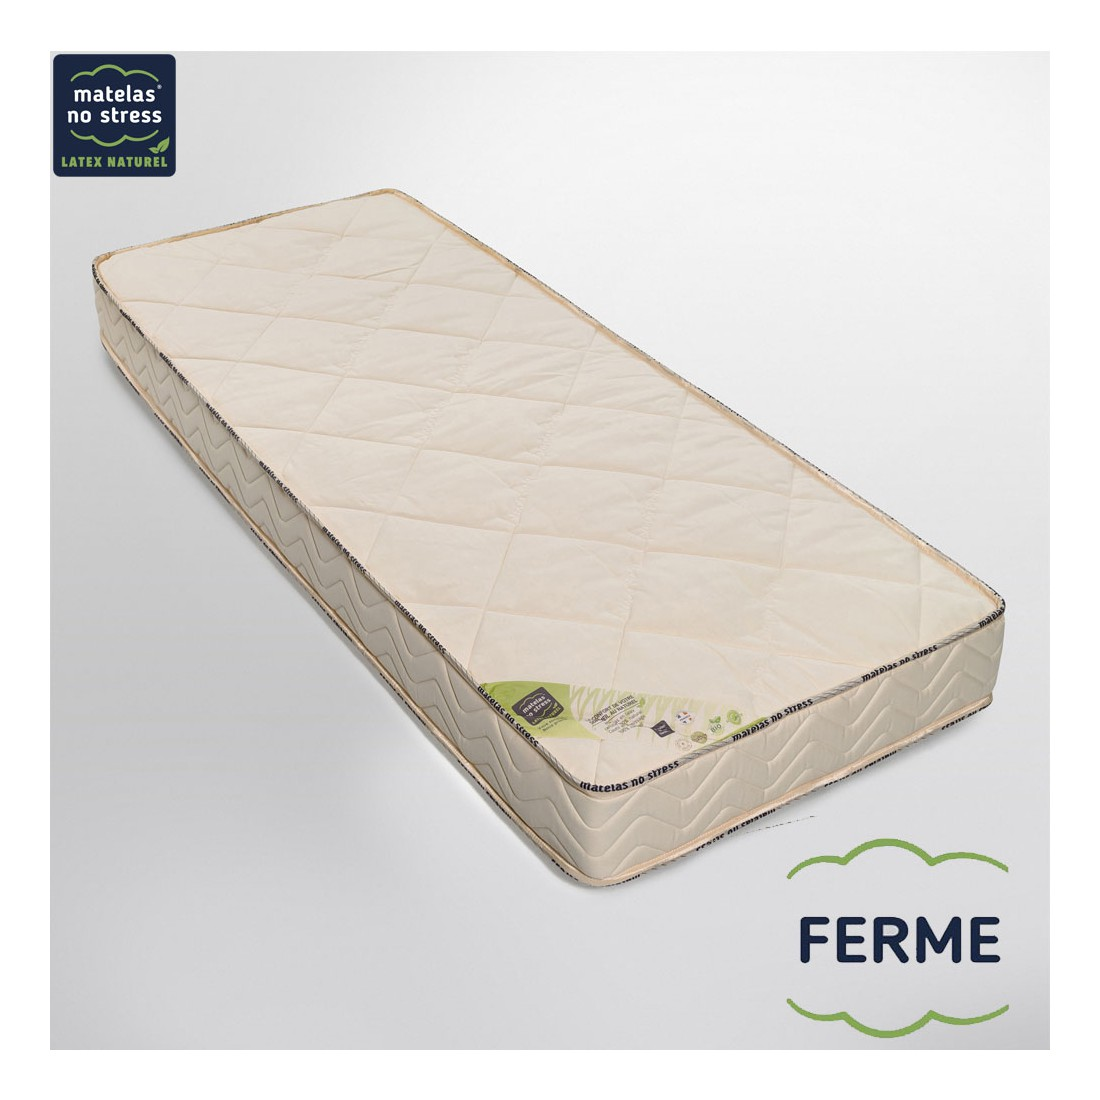 Latex Matratze 140x200 Matelas Bio Latex Naturel Ferme 140x200